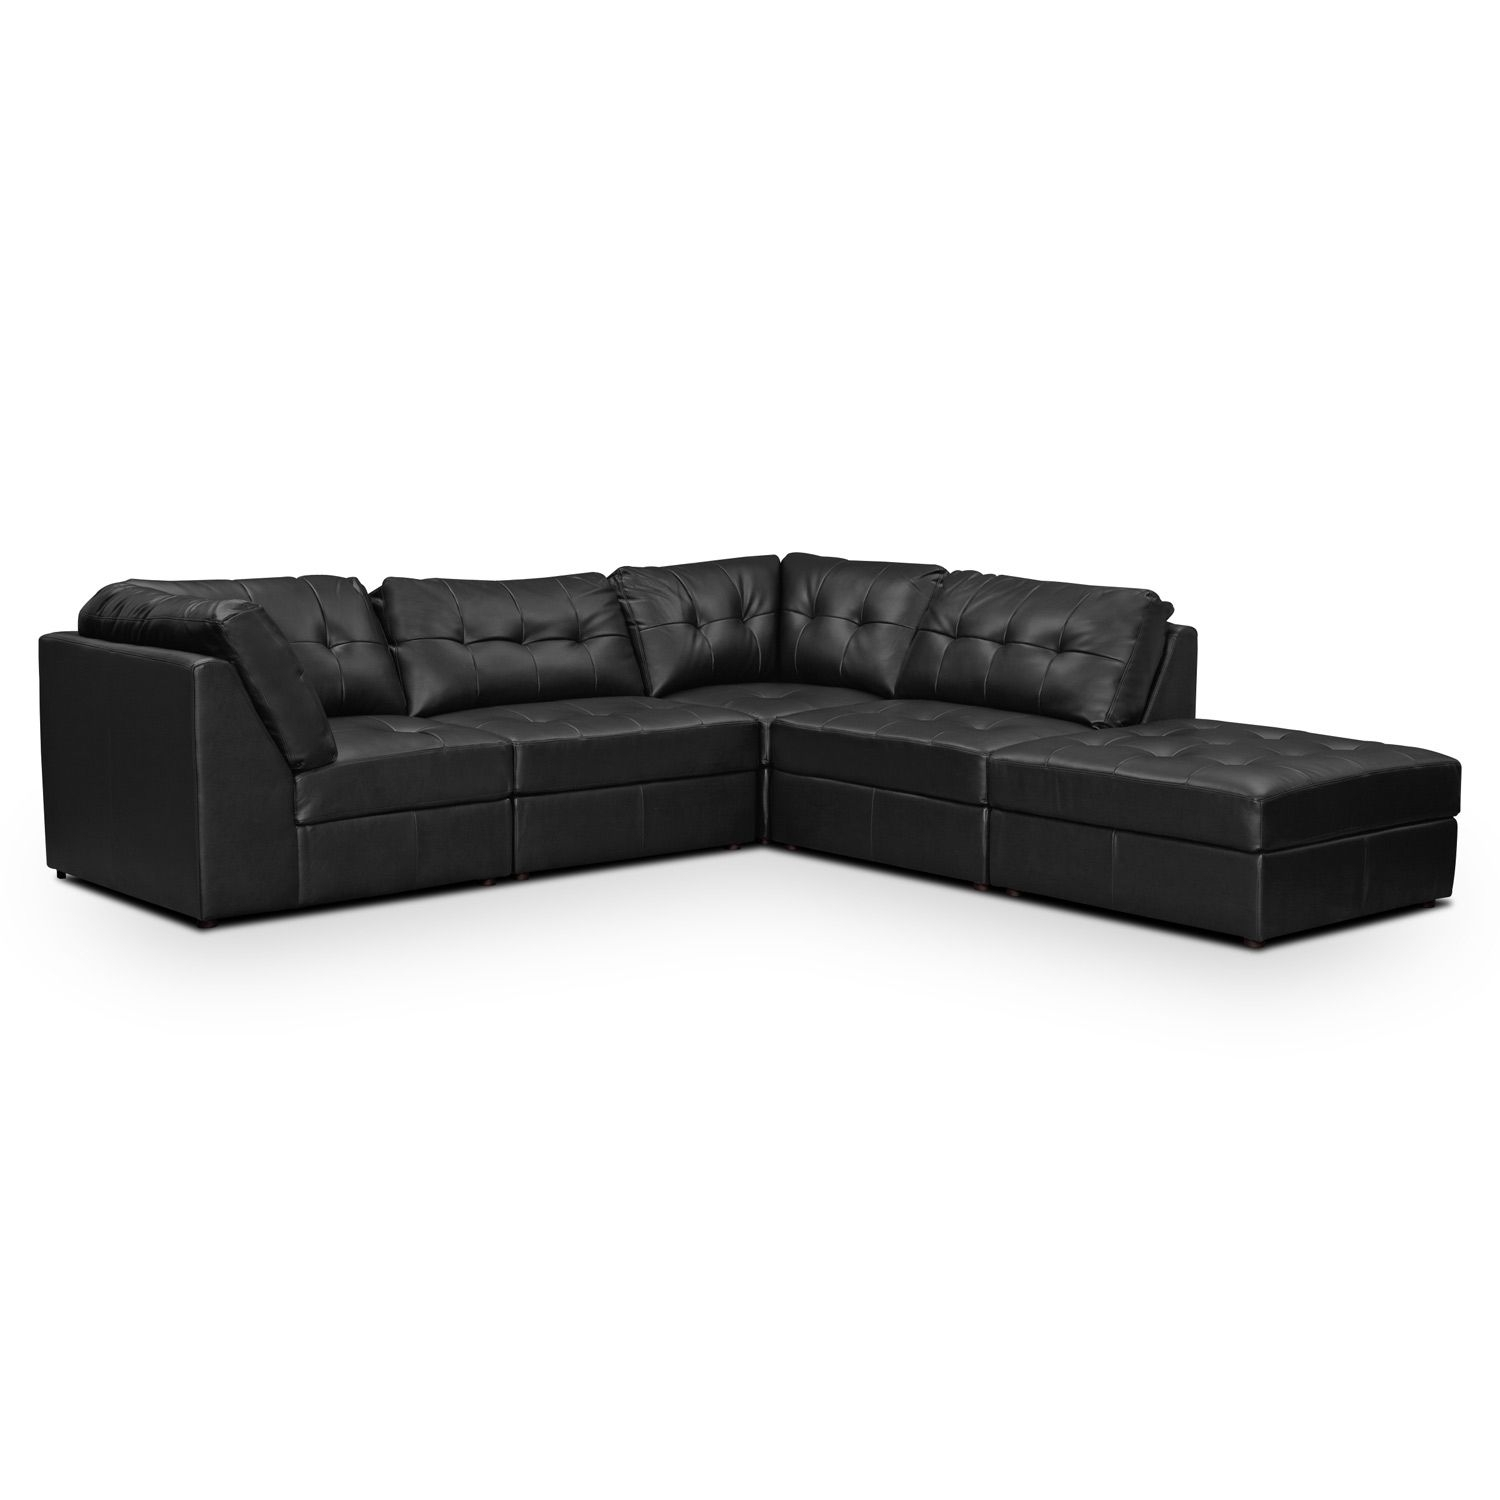 Aventura Leather 5 Pc (View 8 of 25)